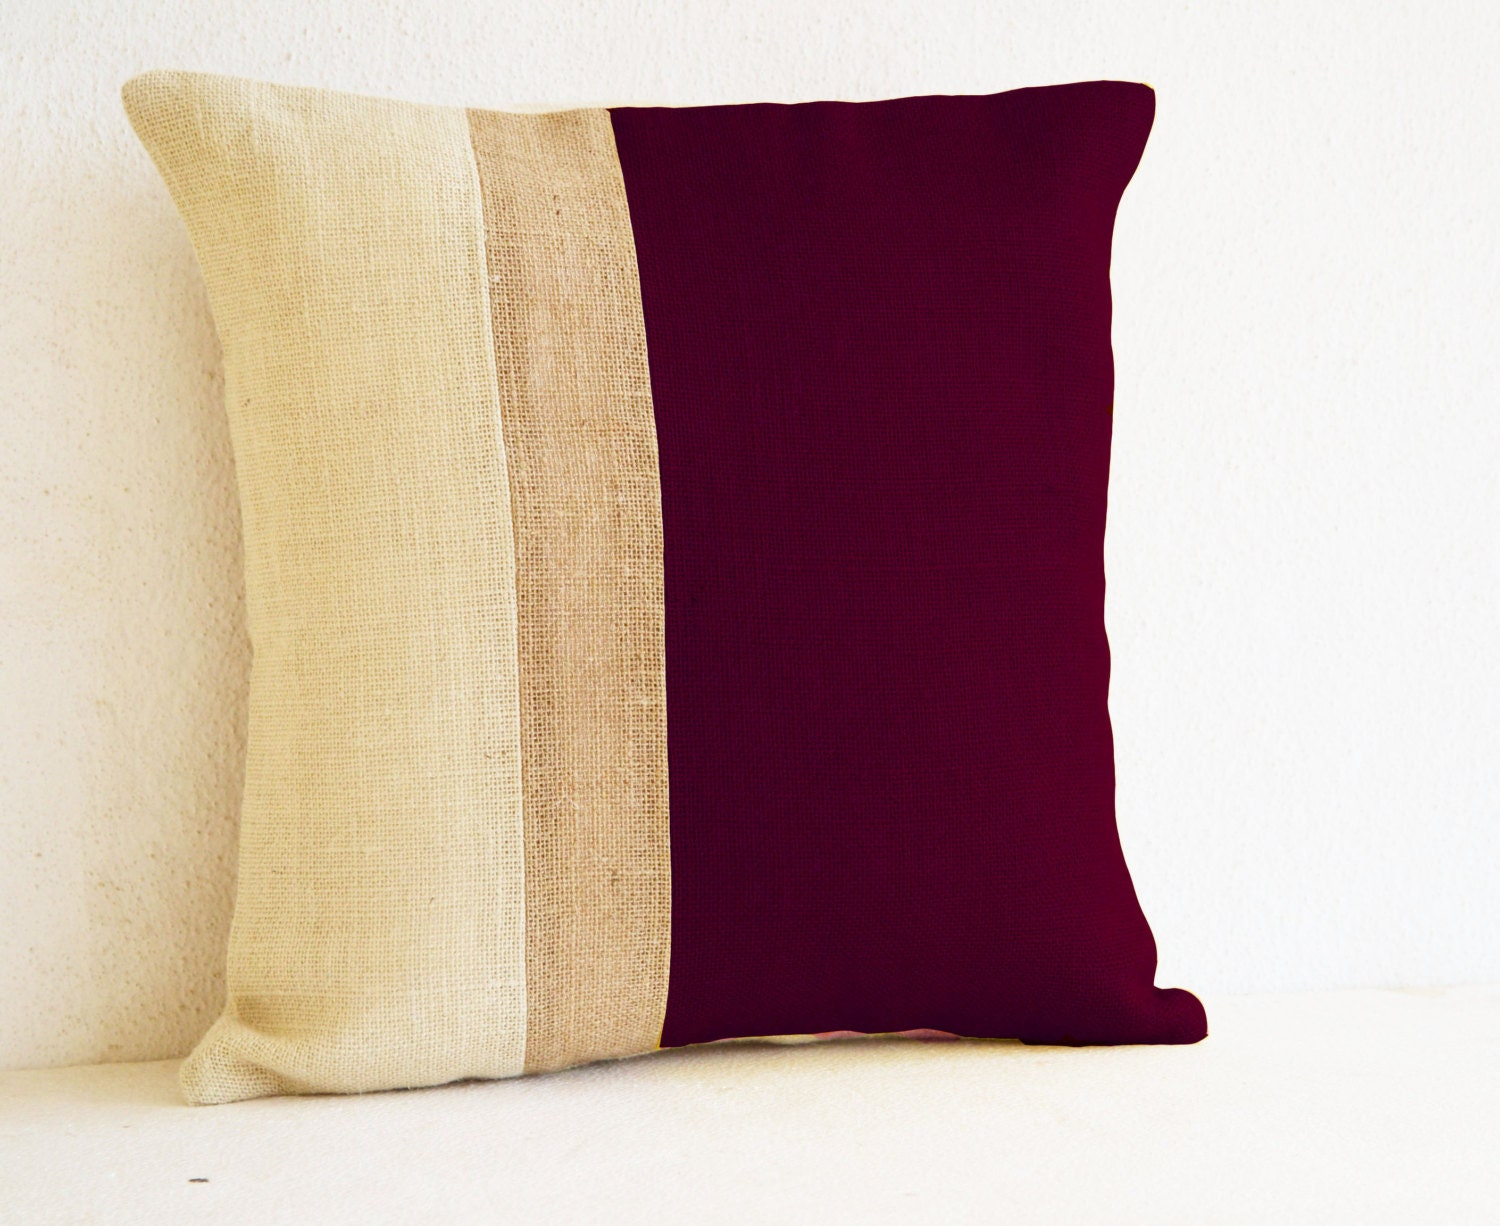 Decorative Pillow Wraps : Decorative Pillow Covers Burgundy Burlap Pillow Color Block